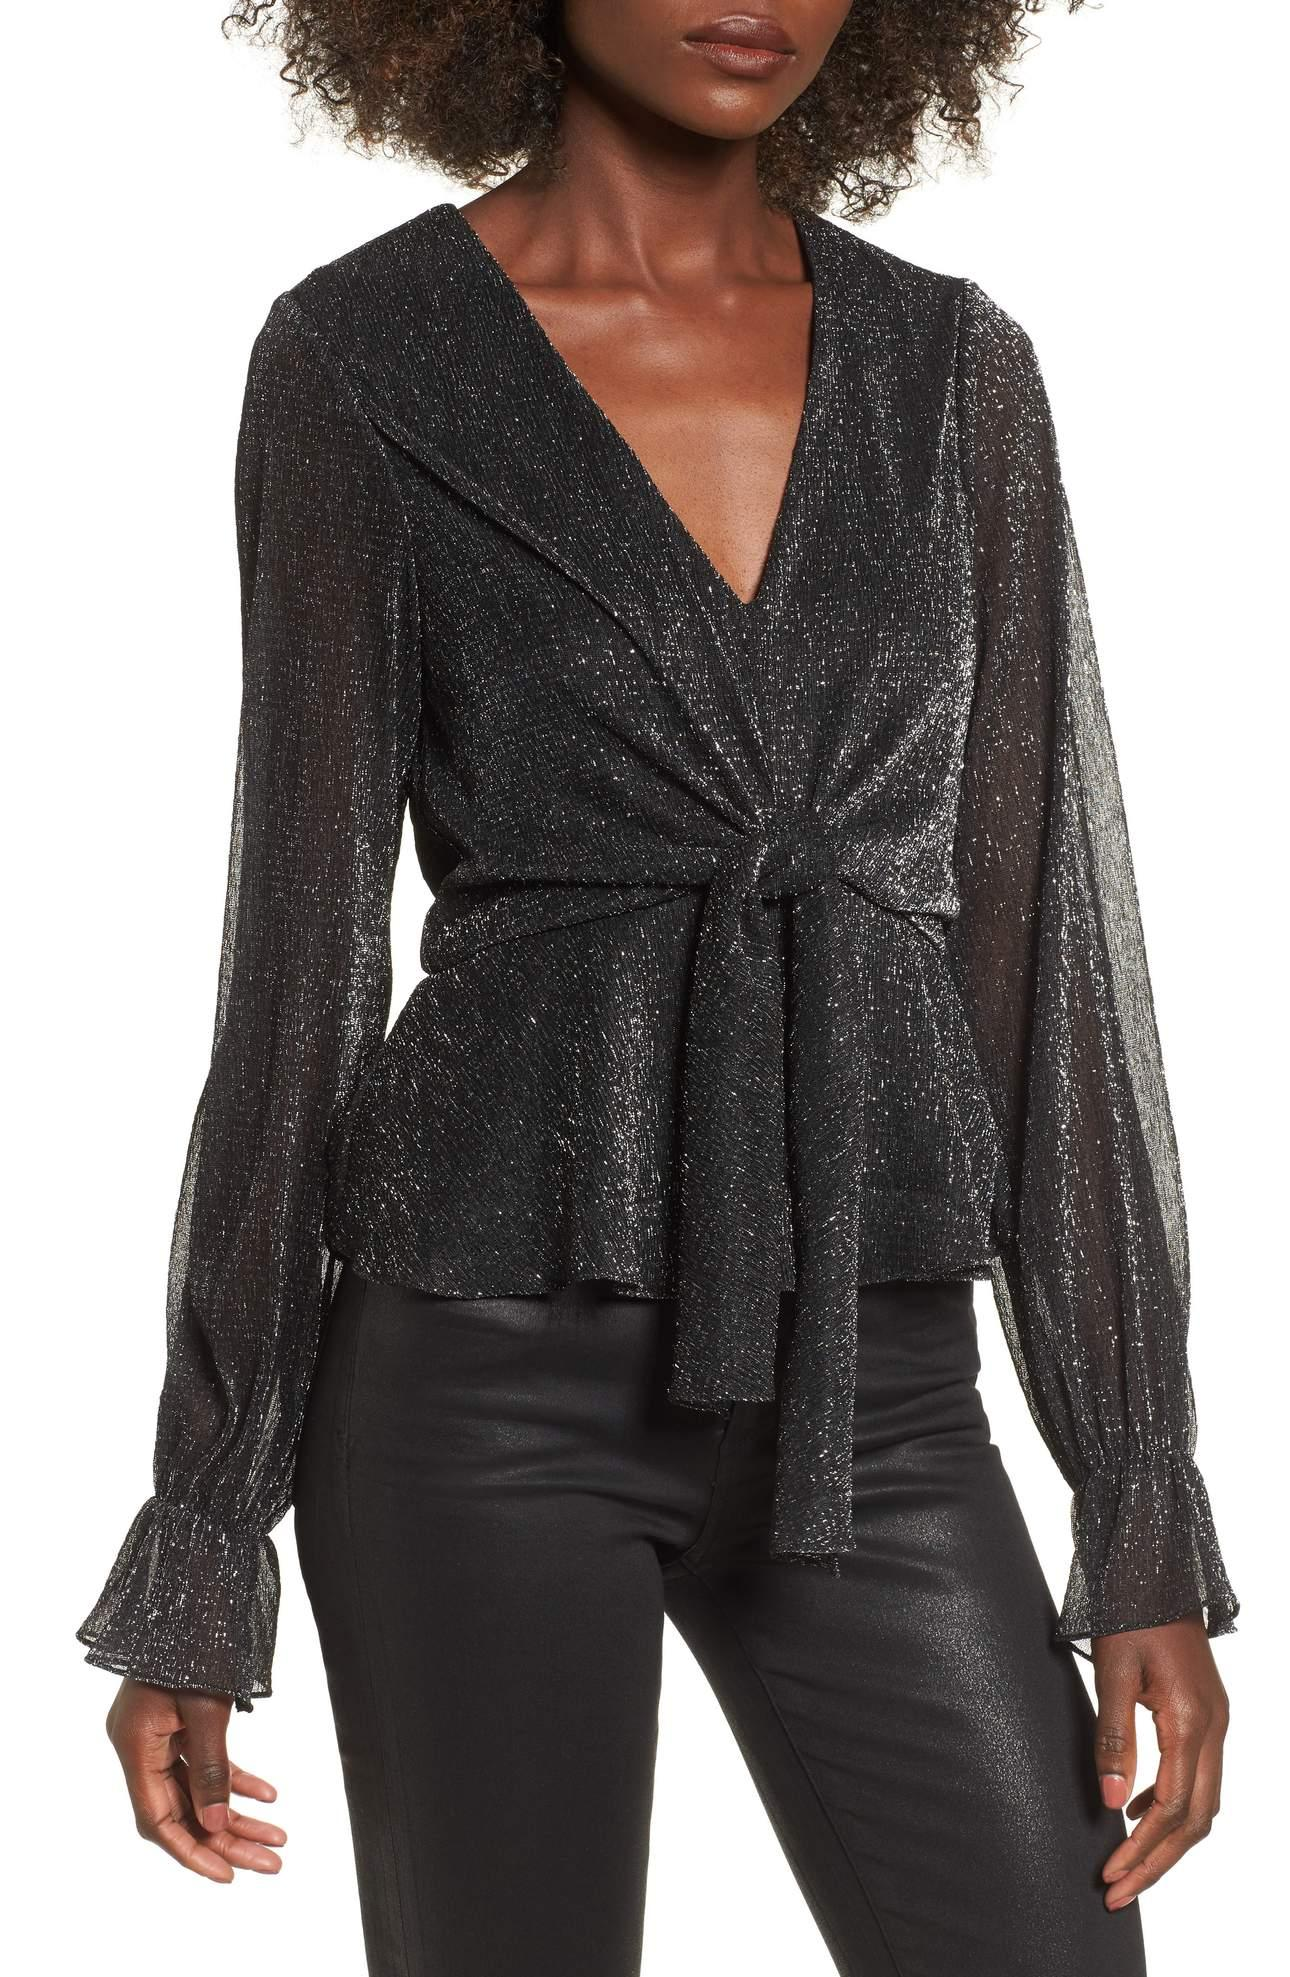 <p>Metallic Tie Front Top - $49. This Metallic Tie Front Top is not only perfect for NYE but you can totally wear it again, and again.{&amp;nbsp;} Pair with a pair of black skinny jeans and colorful heels. (Image: Nordstrom){&amp;nbsp;}</p><p></p>